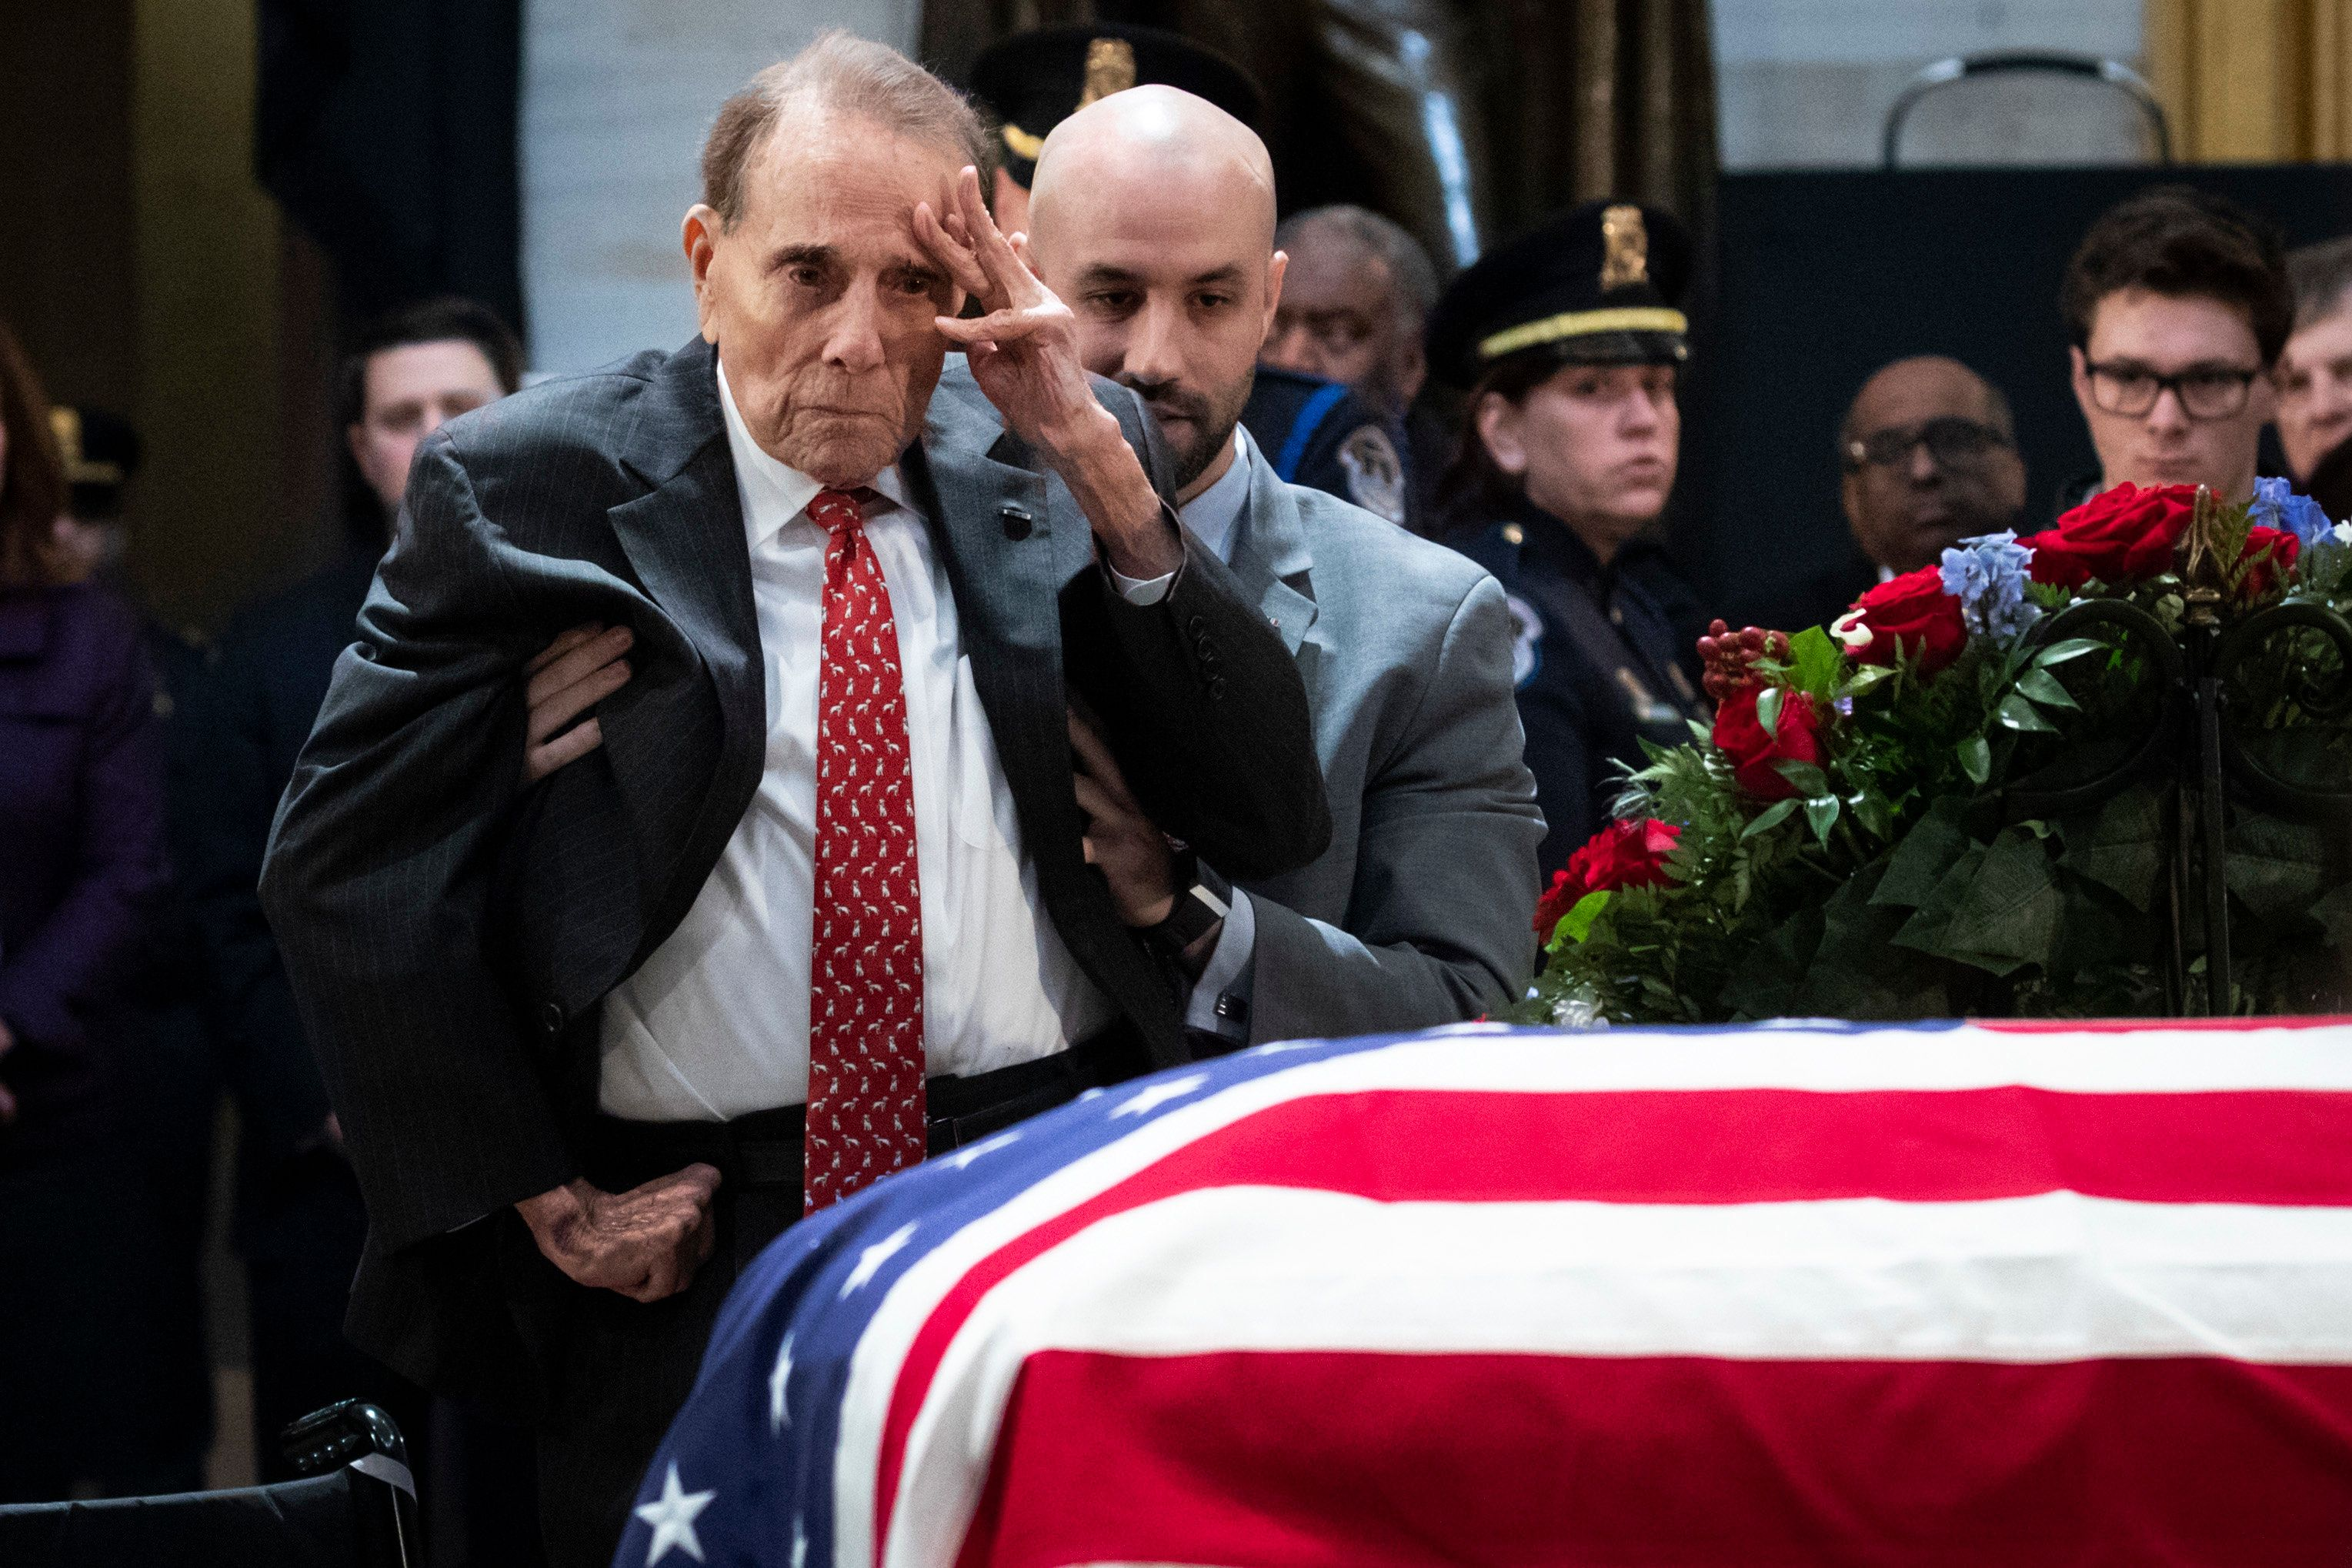 WASHINGTON, DC - DECEMBER 4:  Former Senator Bob Dole stands up and salutes the casket of the late former President George H.W. Bush as he lies in state at the U.S. Capitol, December 4, 2018 in Washington, DC. A WWII combat veteran, Bush served as a member of Congress from Texas, ambassador to the United Nations, director of the CIA, vice president and 41st president of the United States. Bush will lie in state in the U.S. Capitol Rotunda until Wednesday morning. (Photo by Drew Angerer/Getty Images)